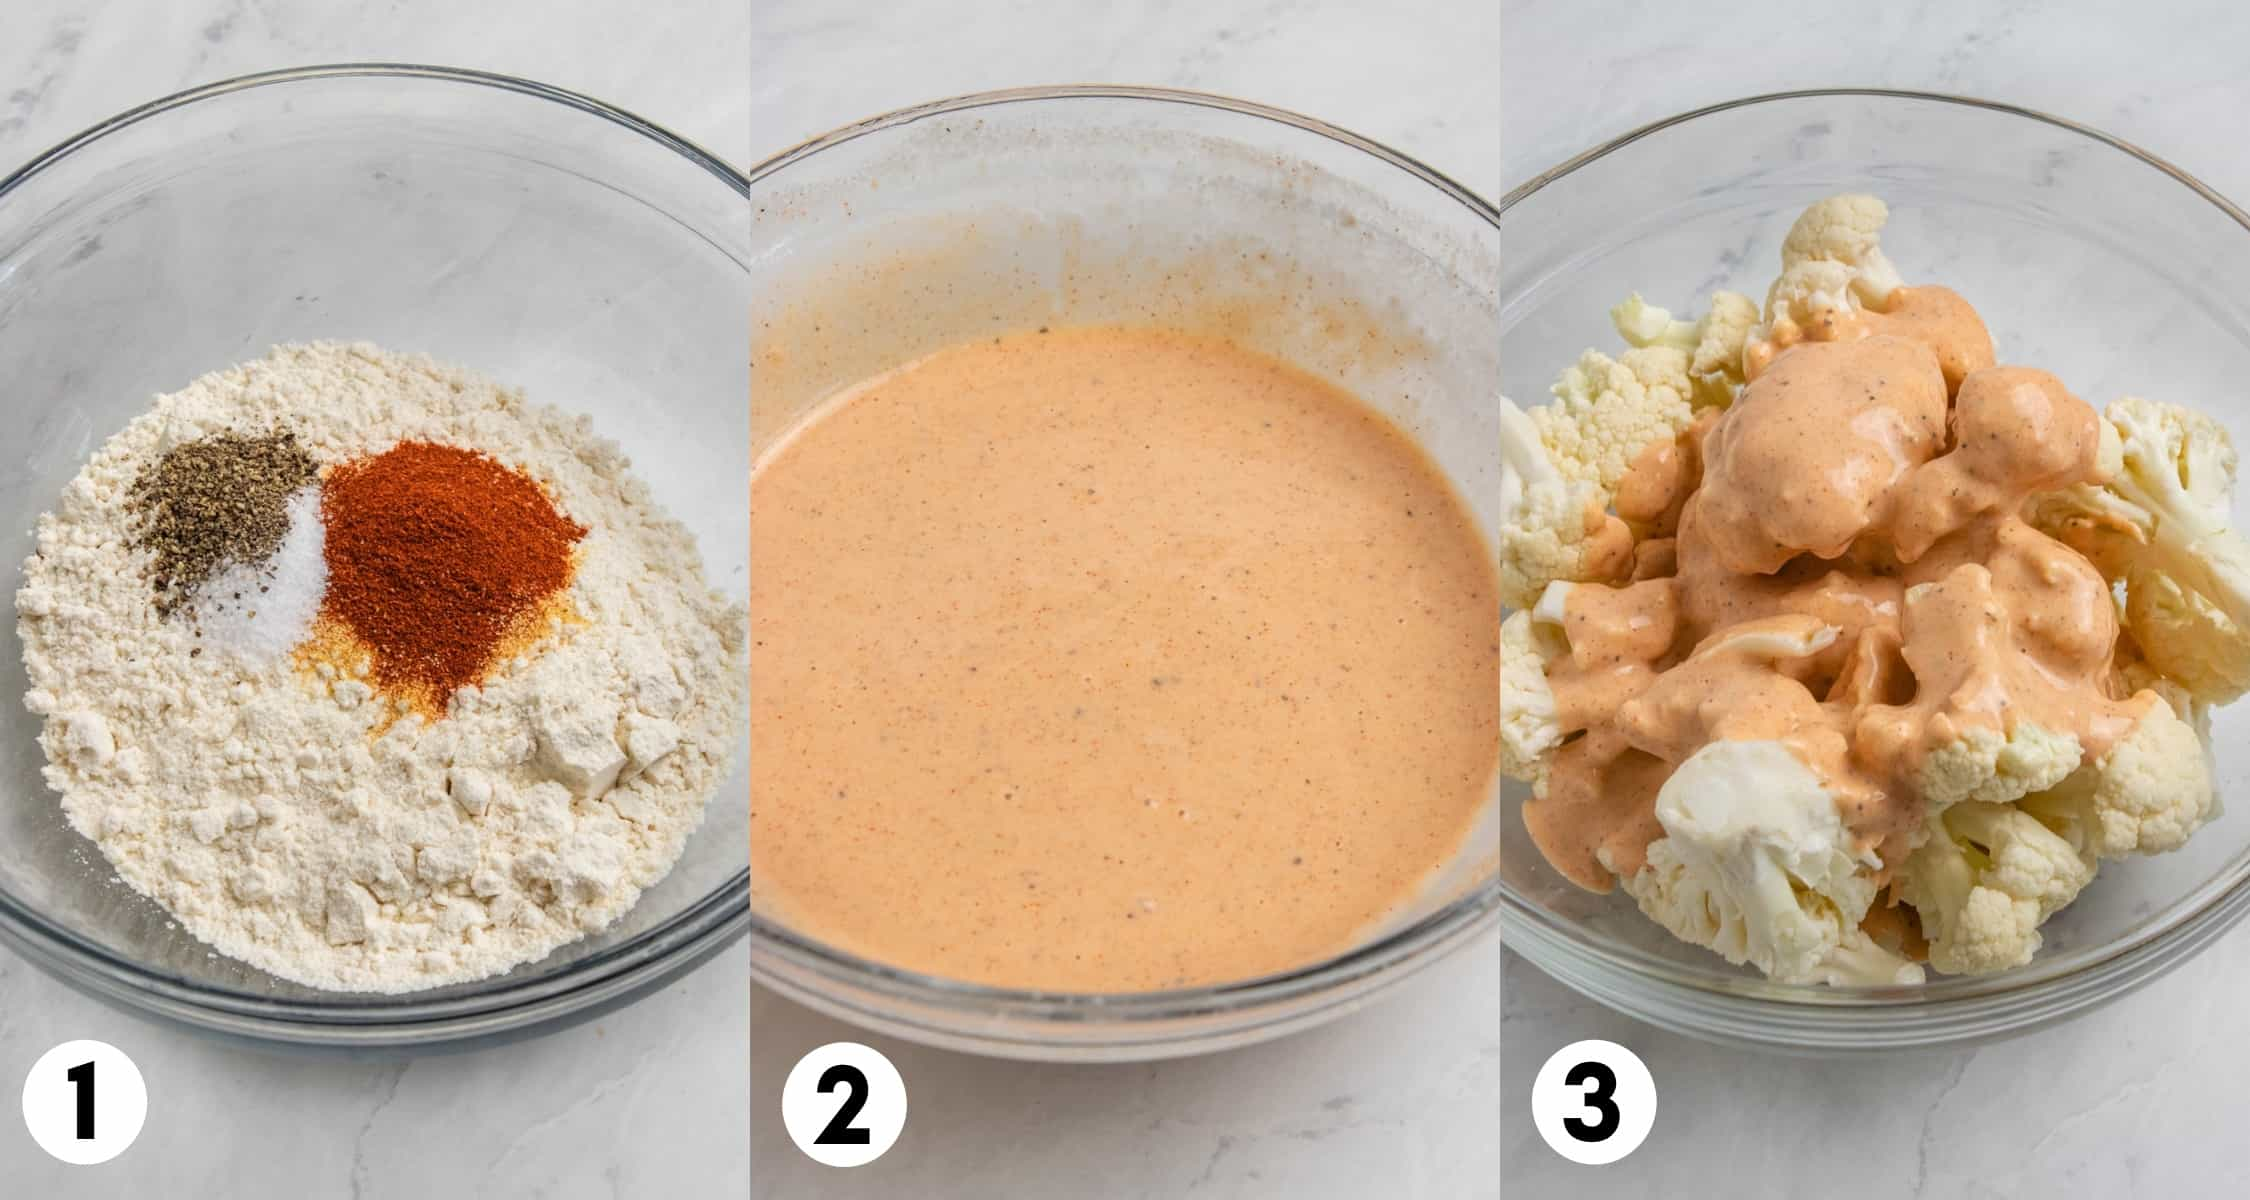 Flour and spices in bowl and then mixed with milk and poured on cauliflower.